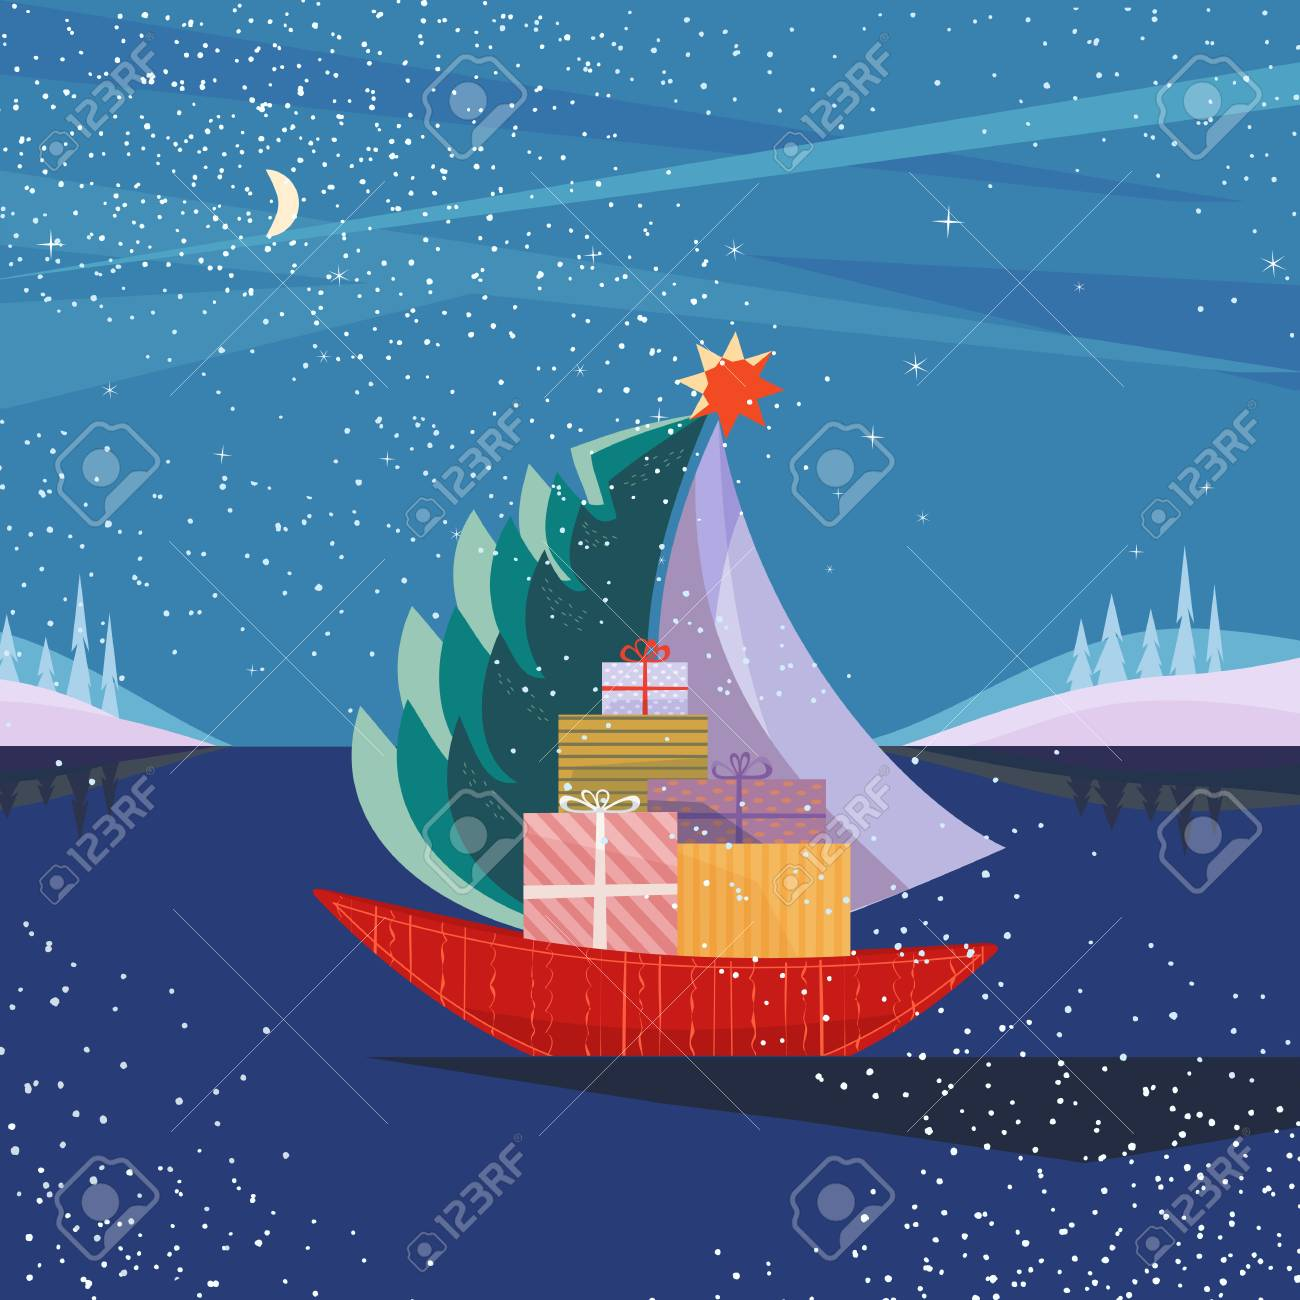 Christmas sailboat sailing by sea with fir tree, gifts present boxes. Fun boat on lake in snowy mountain valley. Colorful cute cartoon. Vector design for winter holiday season new year event - 90962075